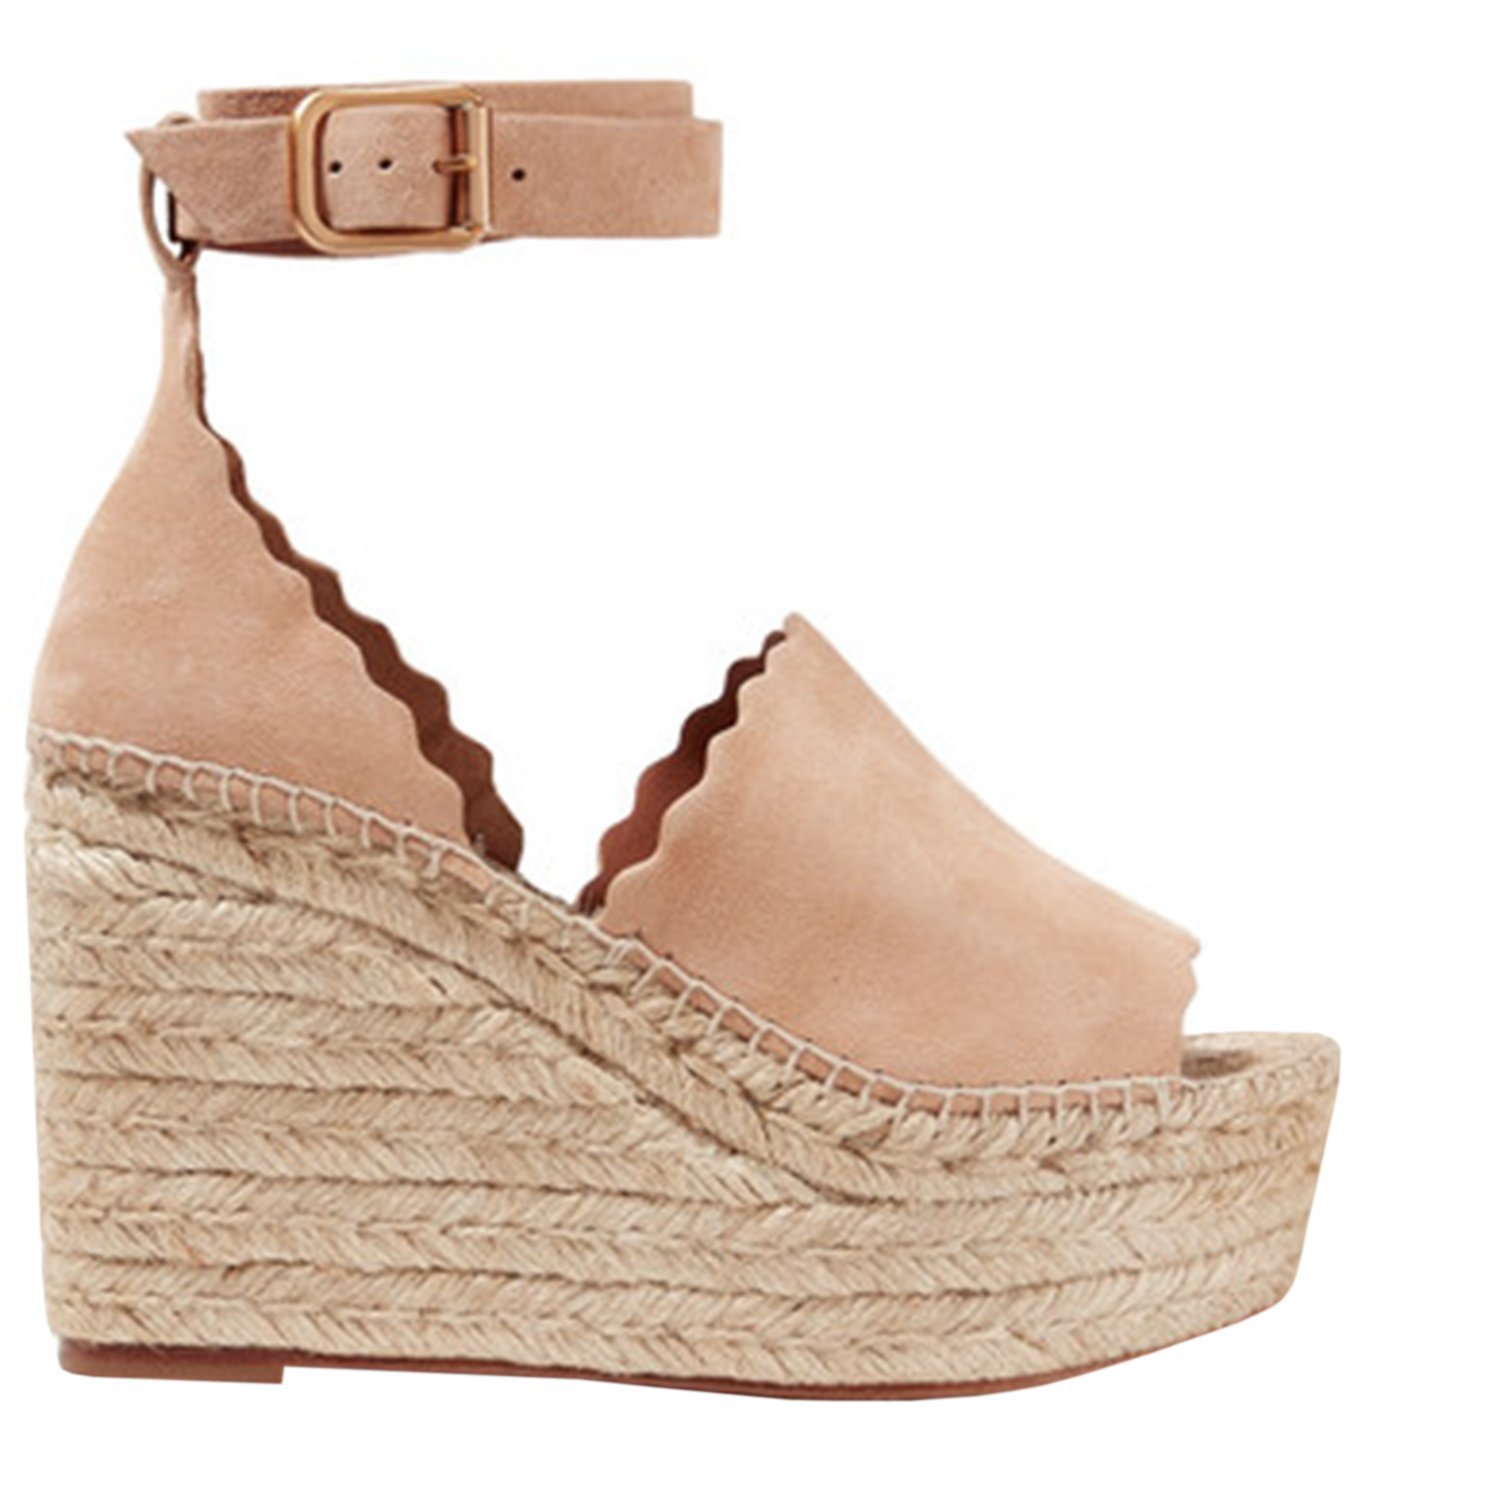 6bf8b311f09 Cheap Womens Espadrille Wedges, find Womens Espadrille Wedges deals ...